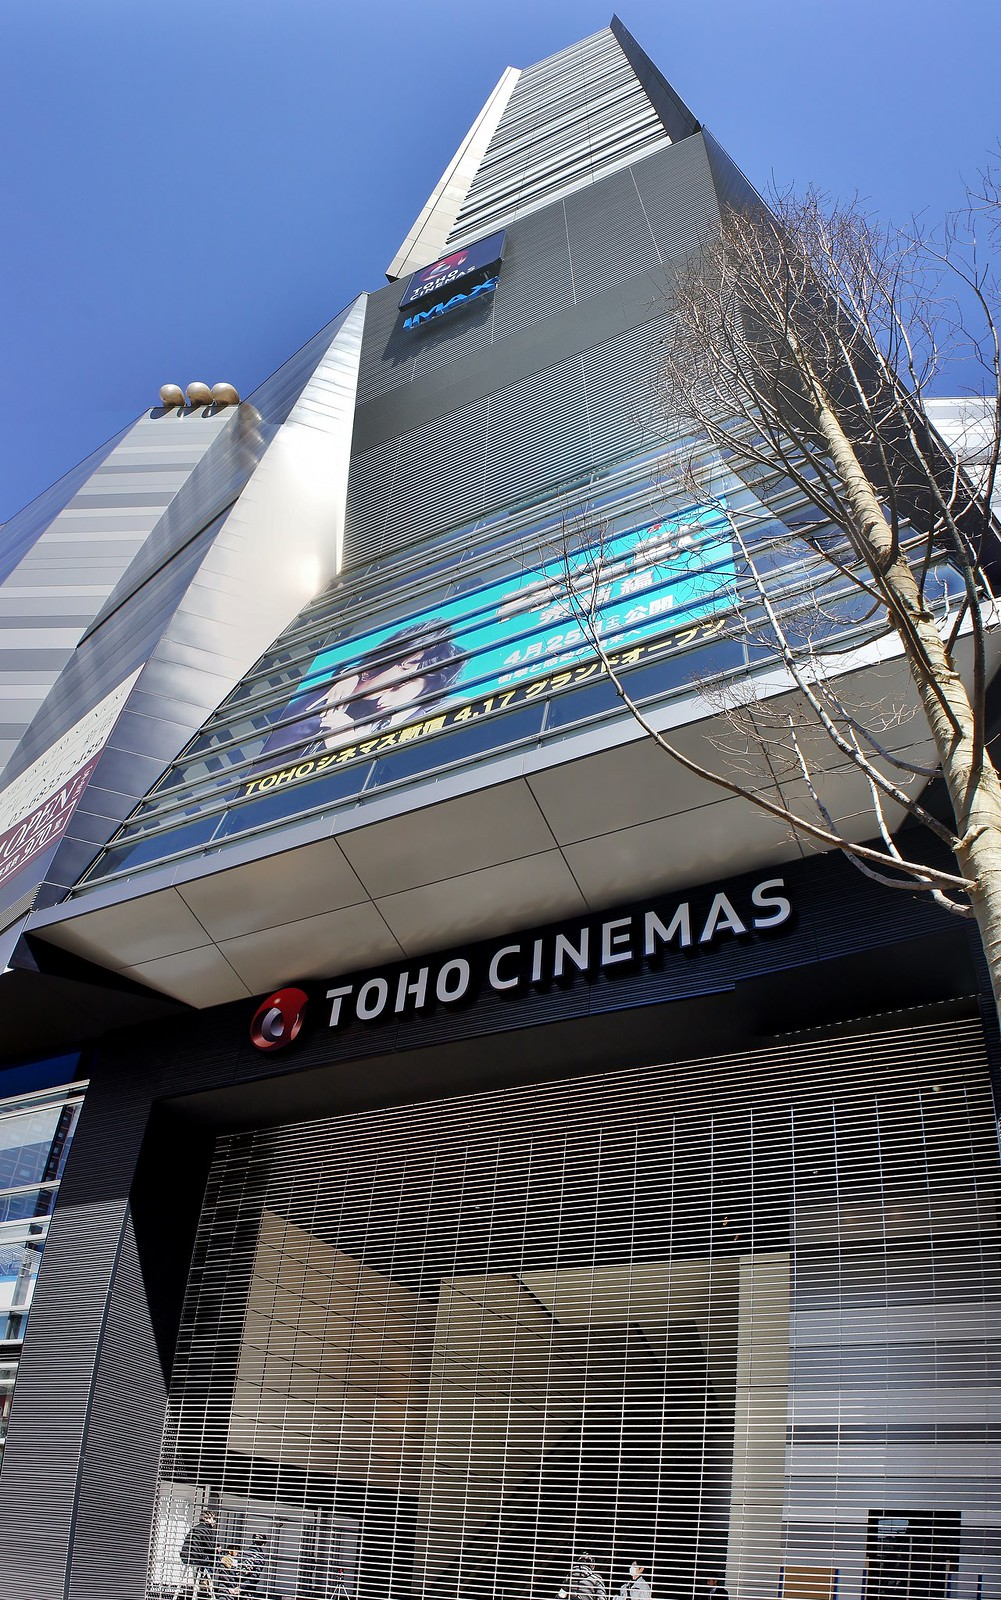 TOHO Cinemas Shinjuku Godzilla attraction